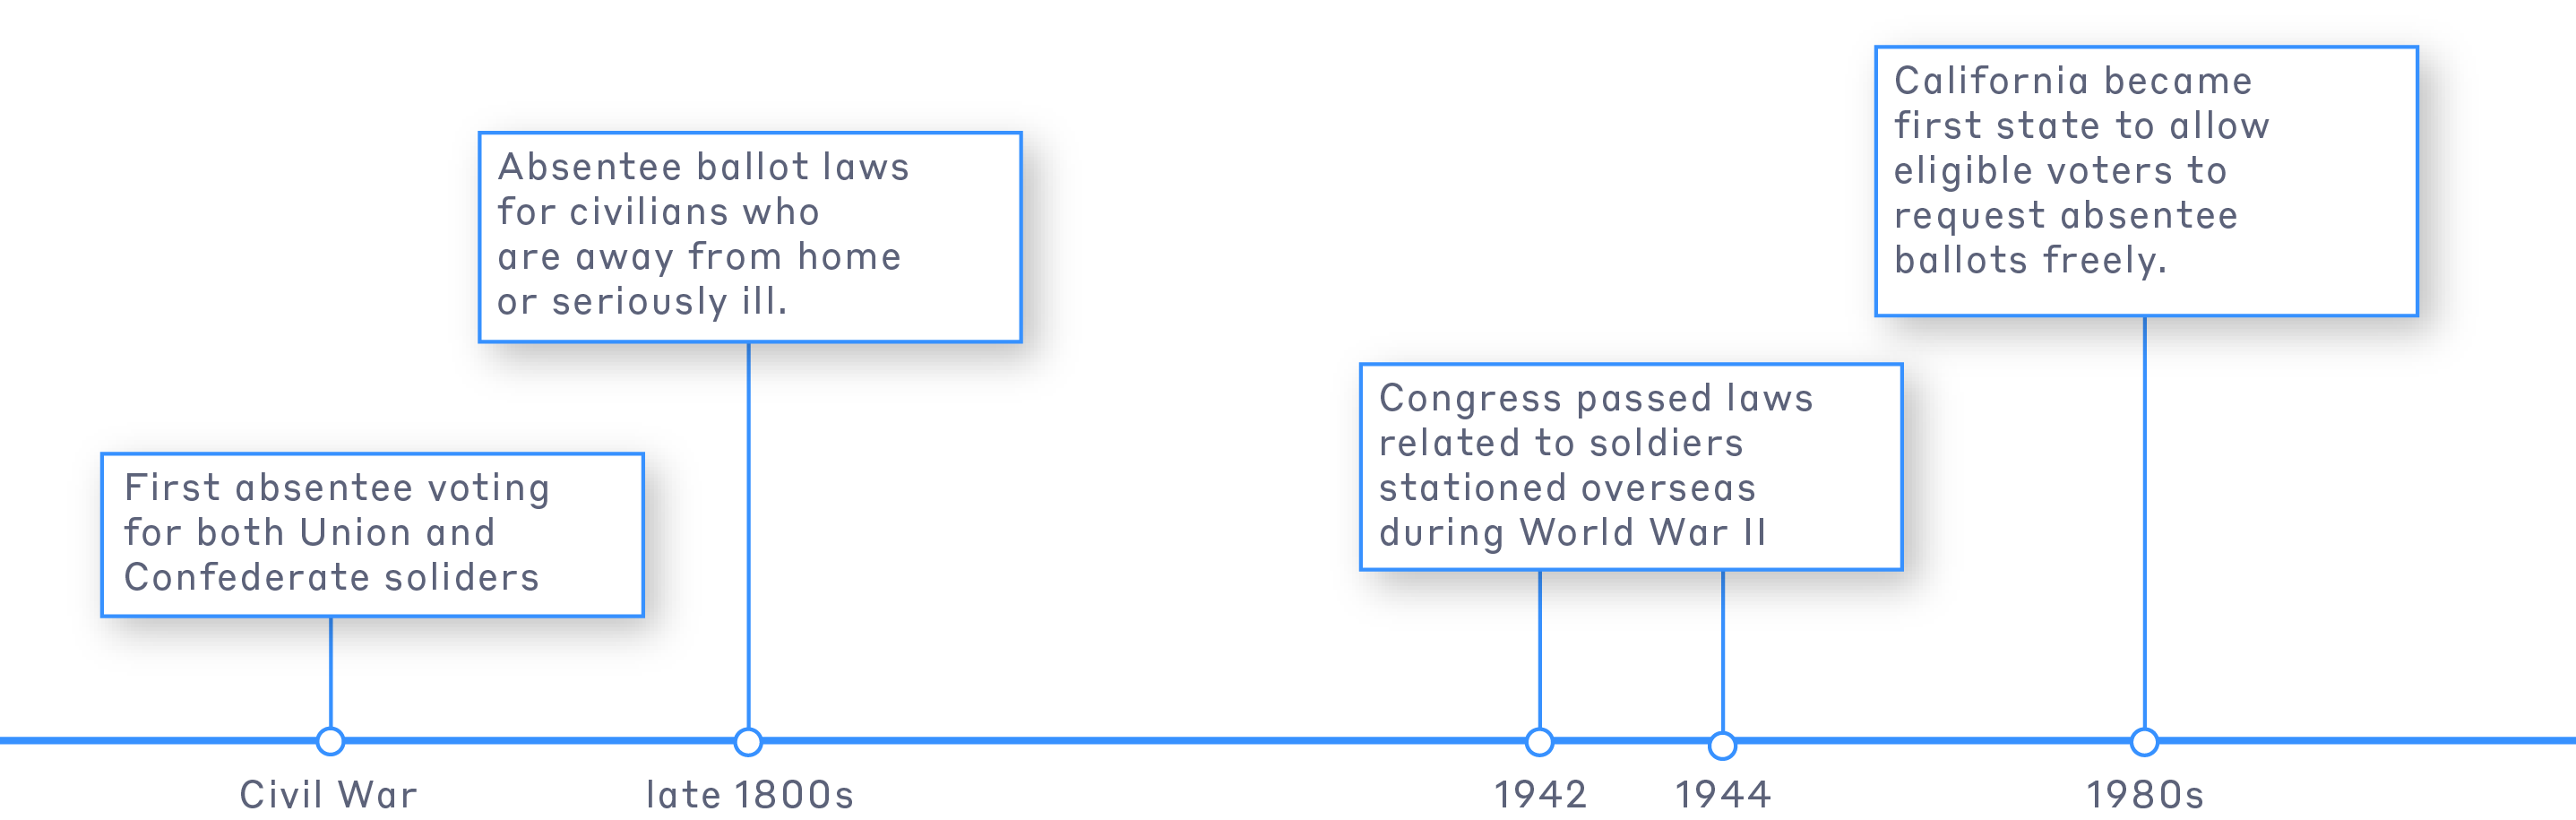 Voting absentee timeline